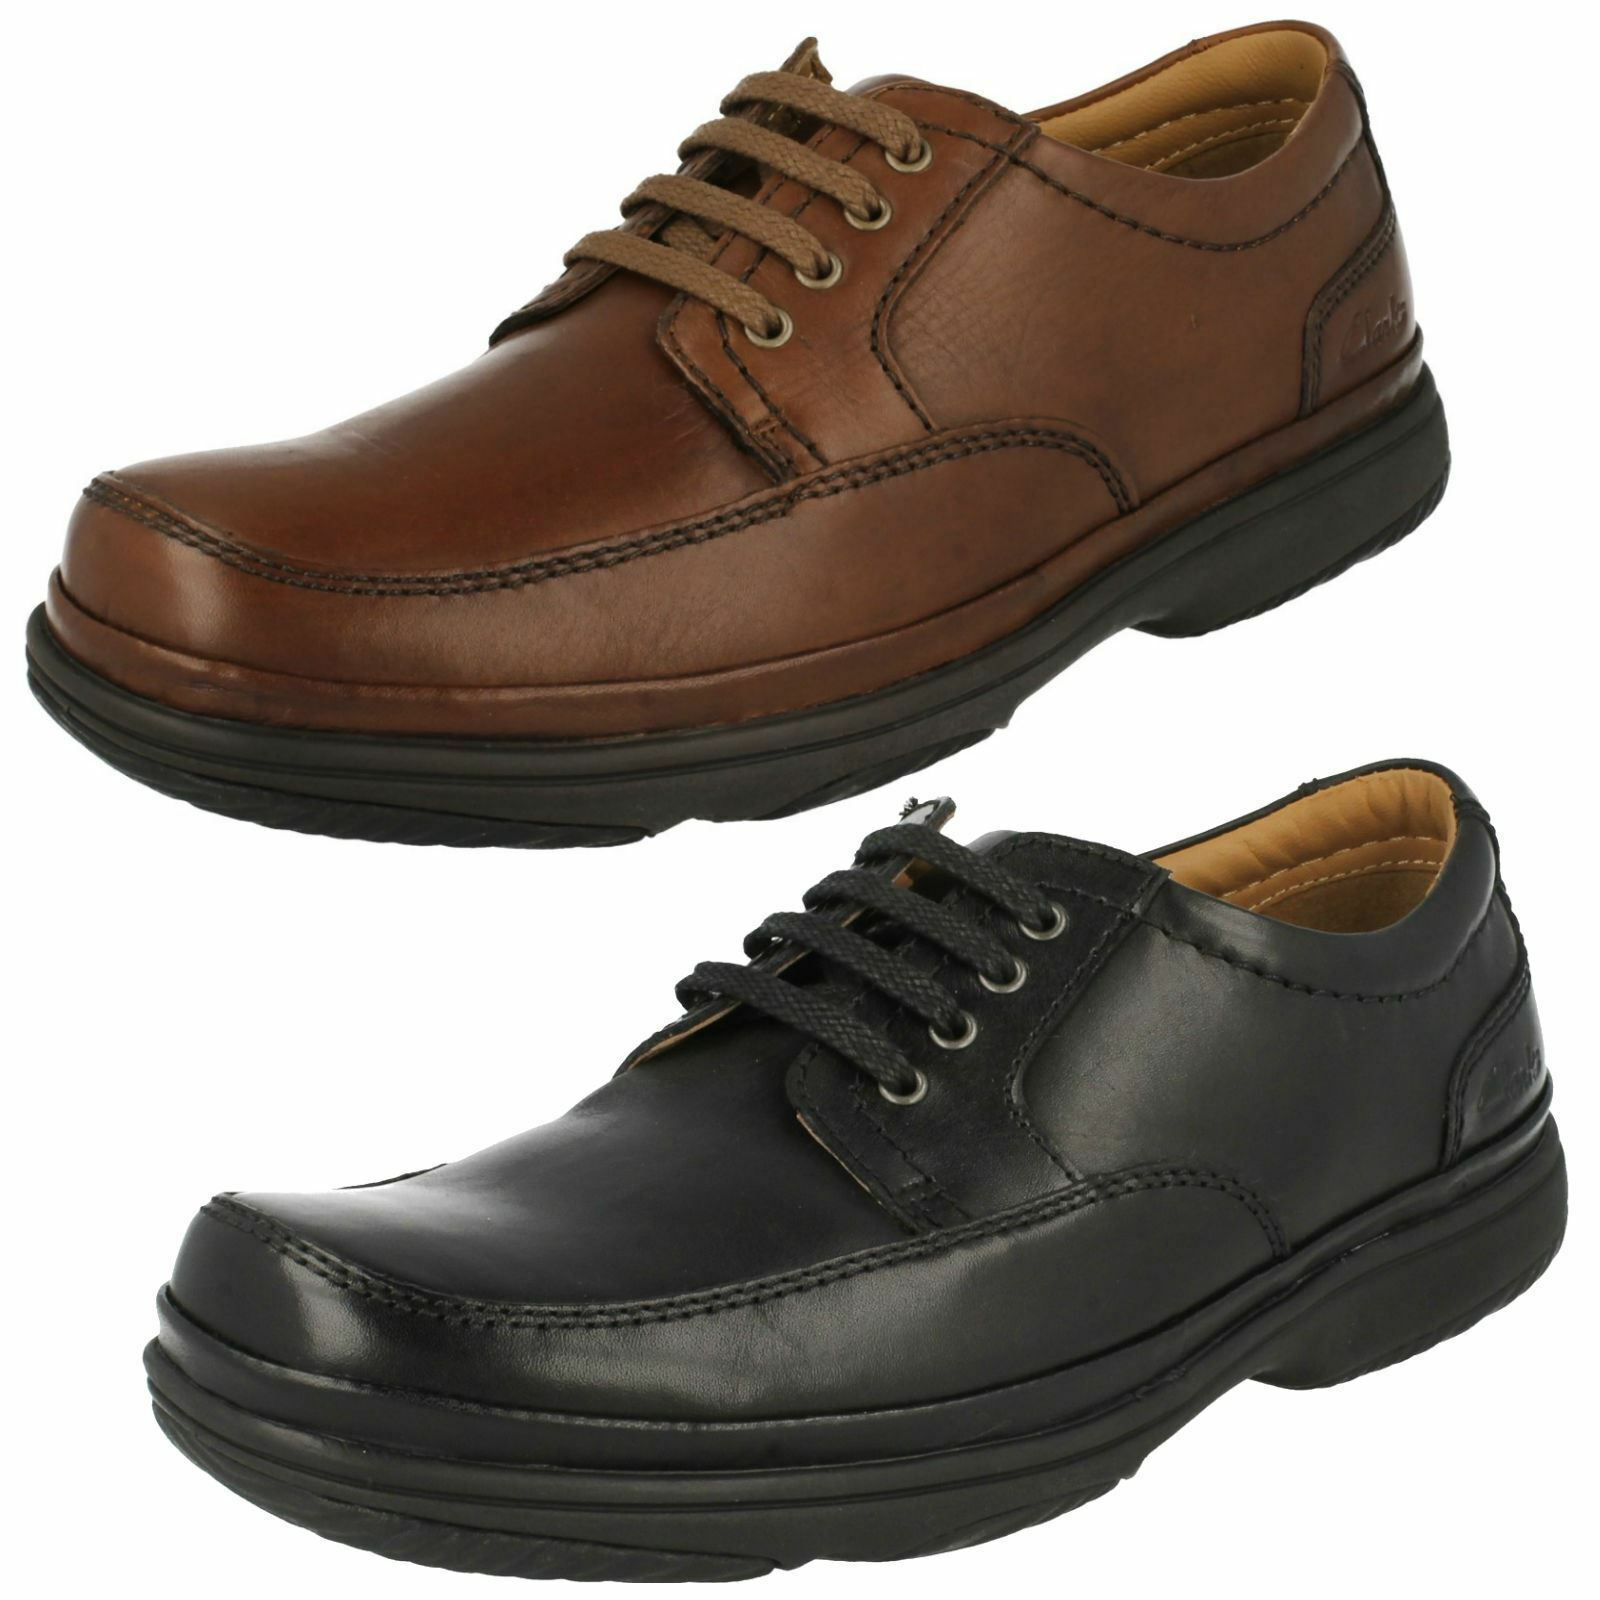 MENS CLARKS LEATHER LACE UP FLEXLIGHT WIDE CUSHIONED CASUAL SHOES SWIFT MILE